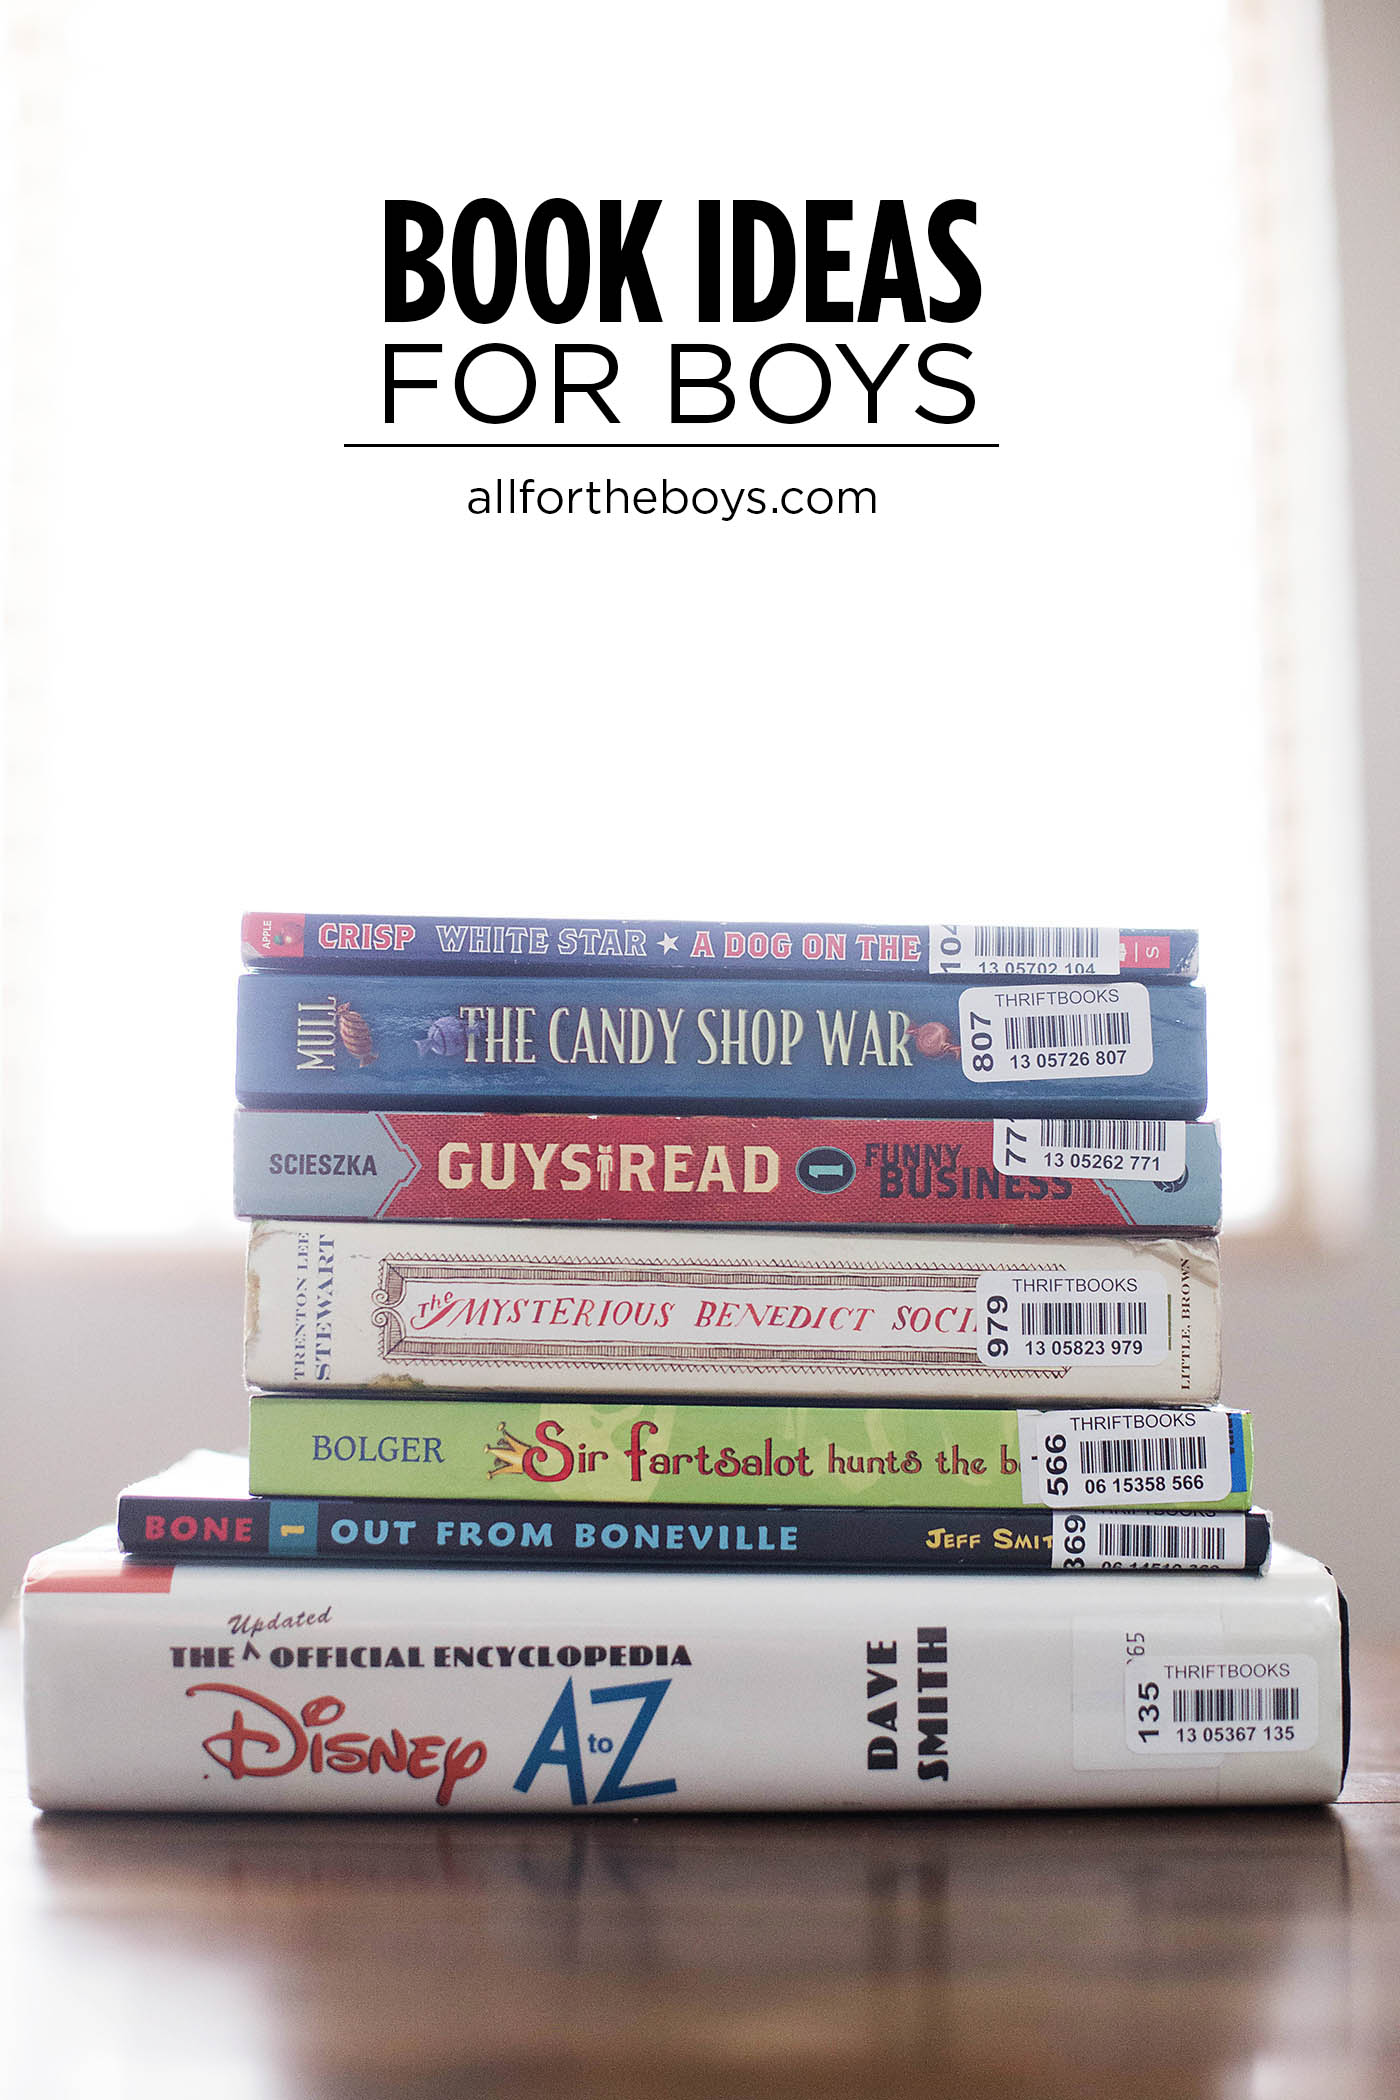 Book ideas for boys and where to buy them for cheap!